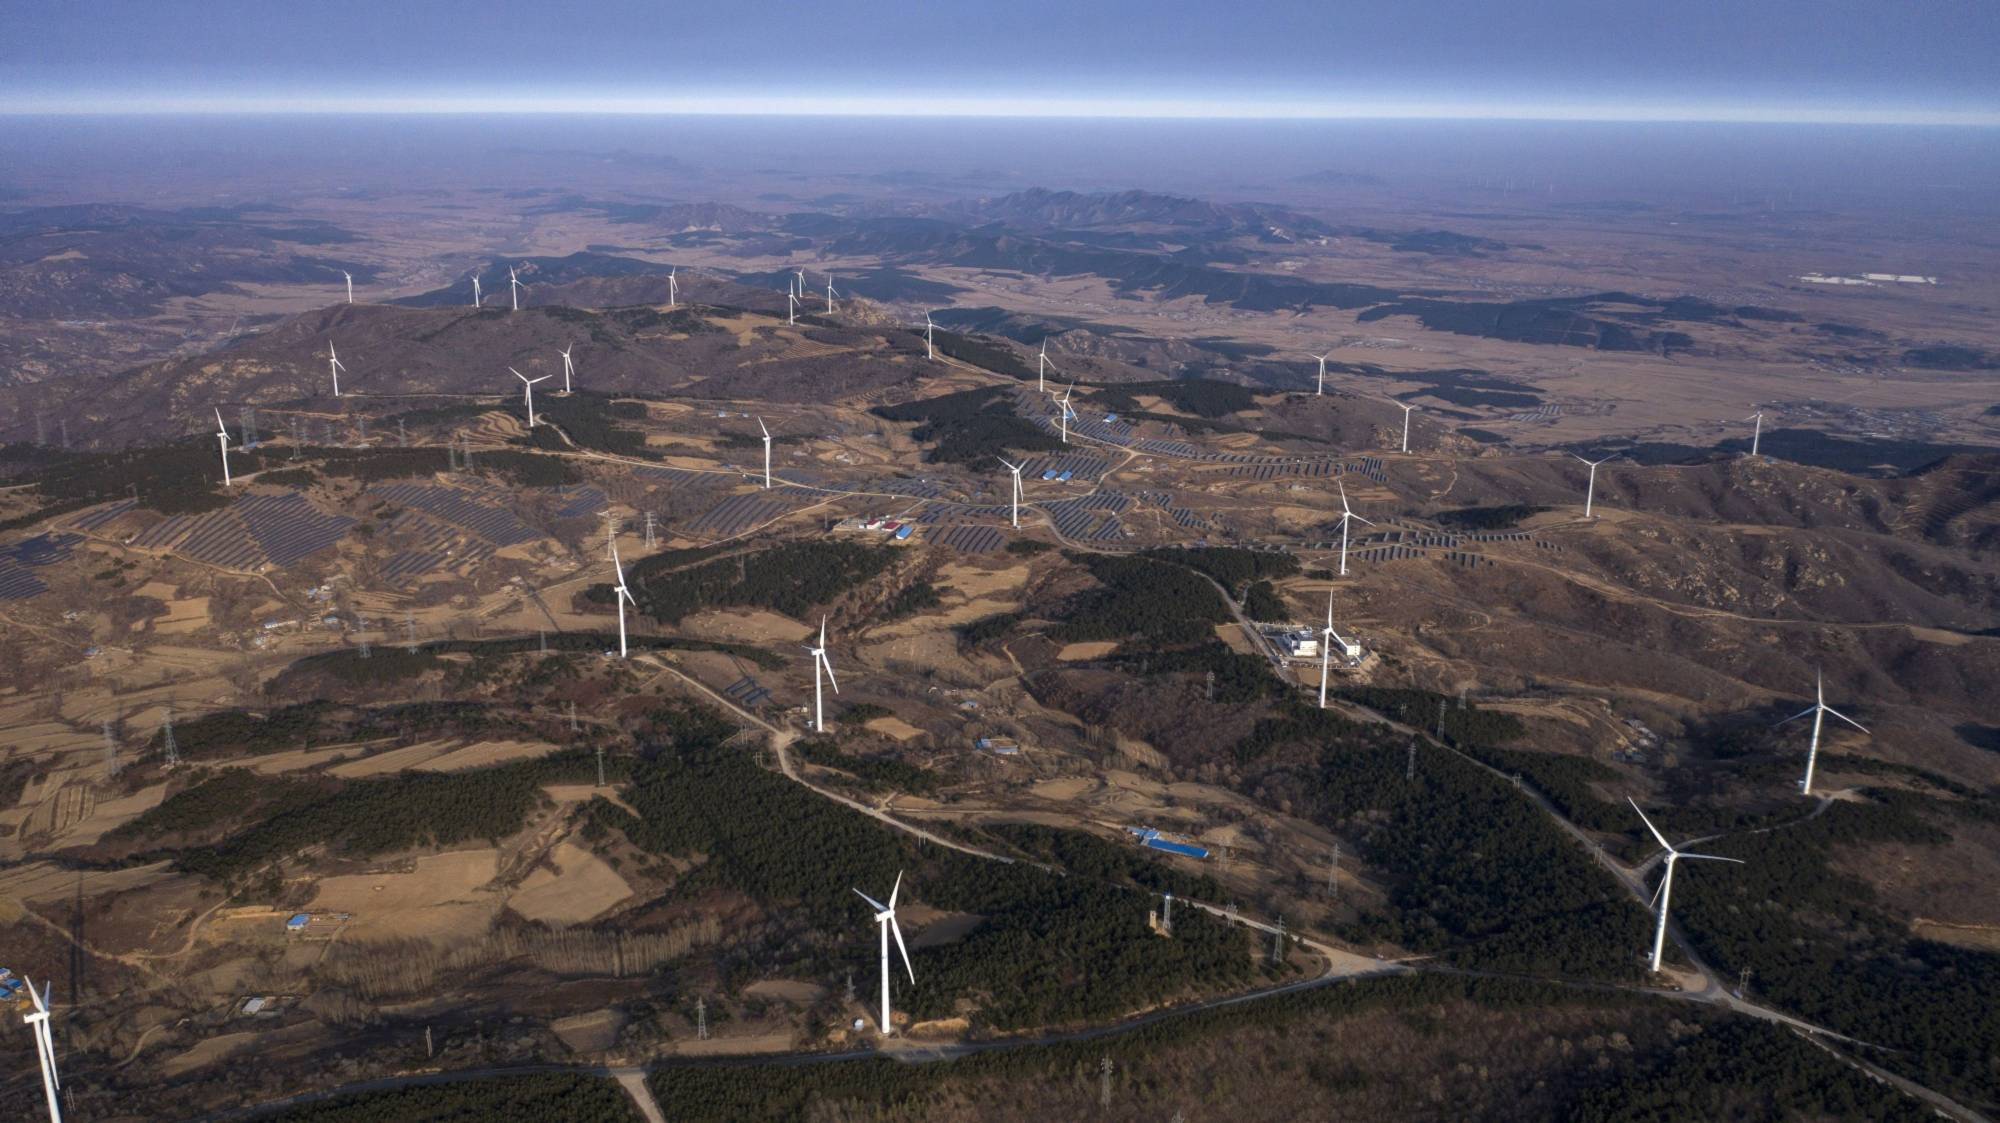 China's ruling Communist Party's politburo said in November that the five-year plan should promote low-carbon energy and support efforts to quickly bring emissions to a peak in some regions. | BLOOMBERG